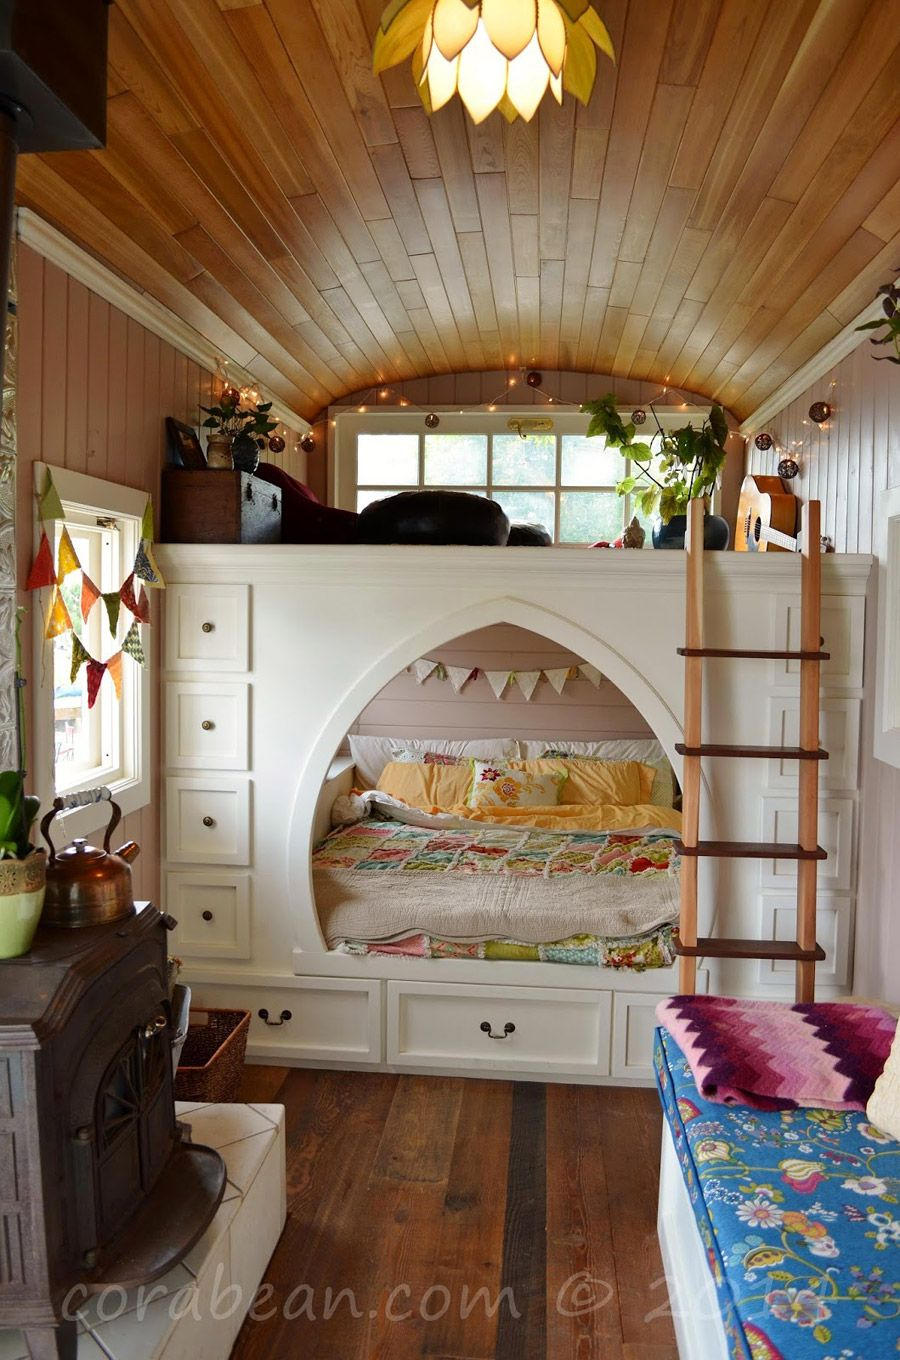 a retired school bus completely transformed into a micro living rh pinterest com homebase bedroom furniture homebase bedding plants